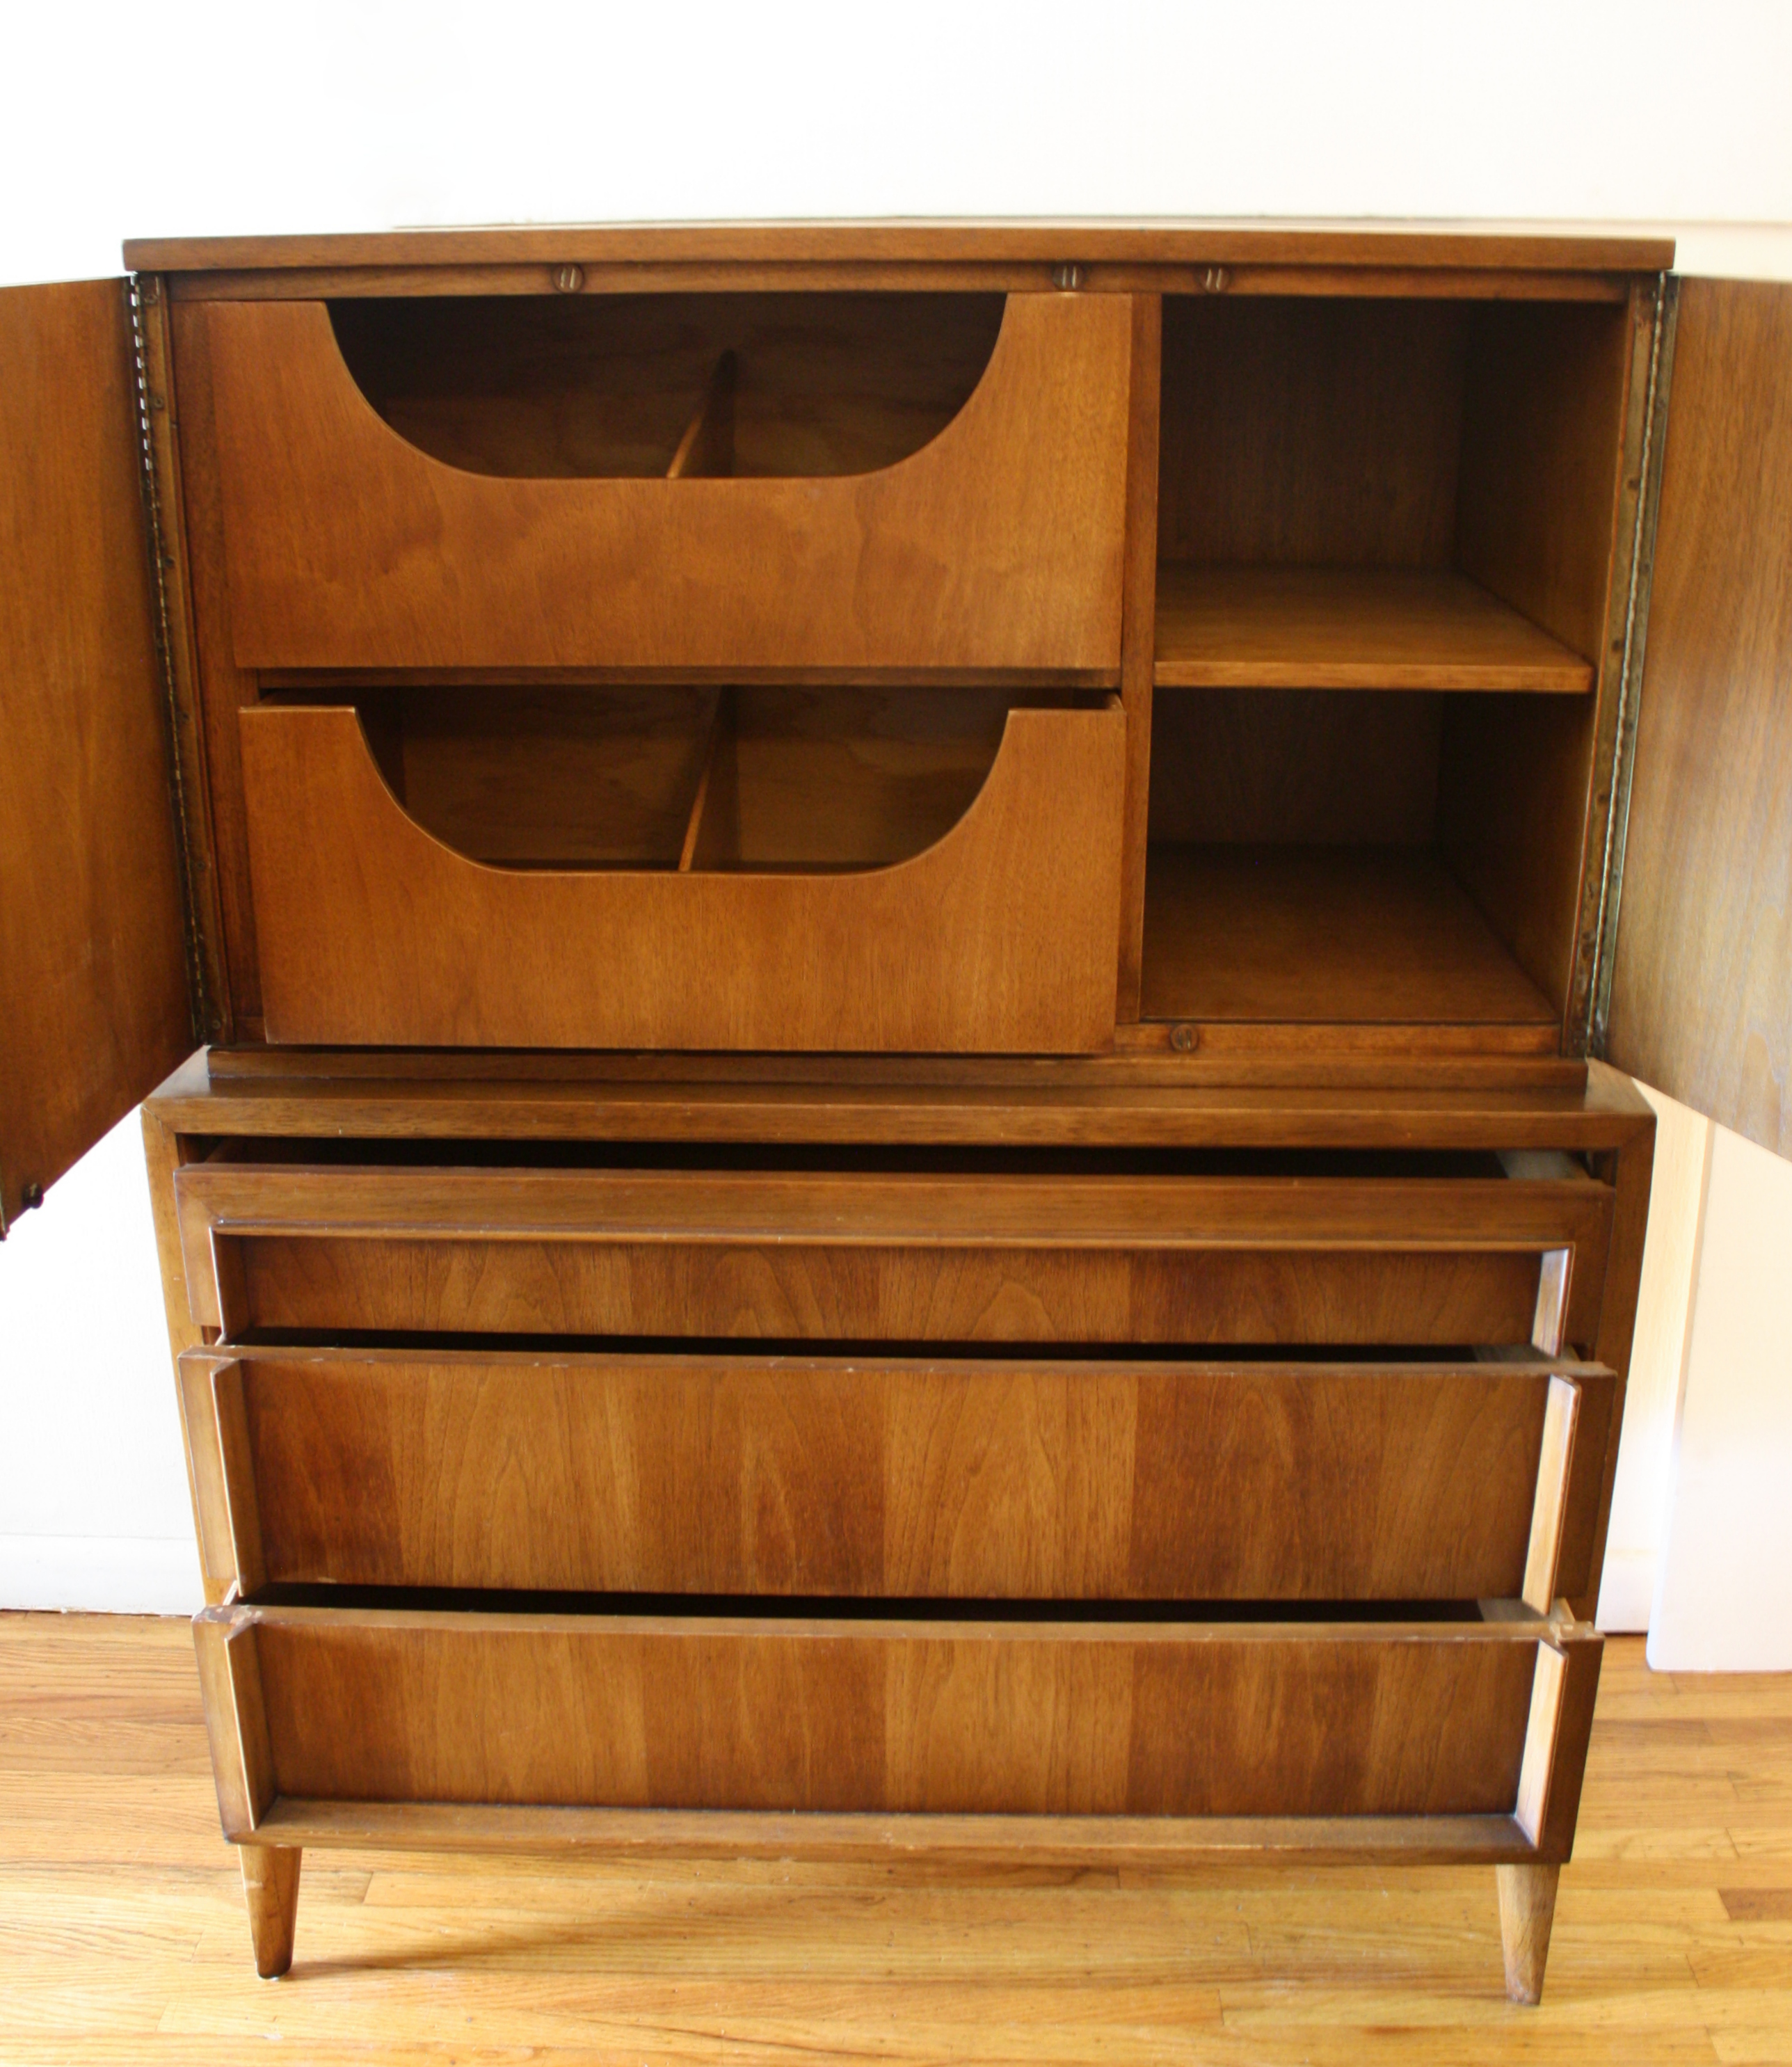 mcm armoire tall dresser with rattan doors 2